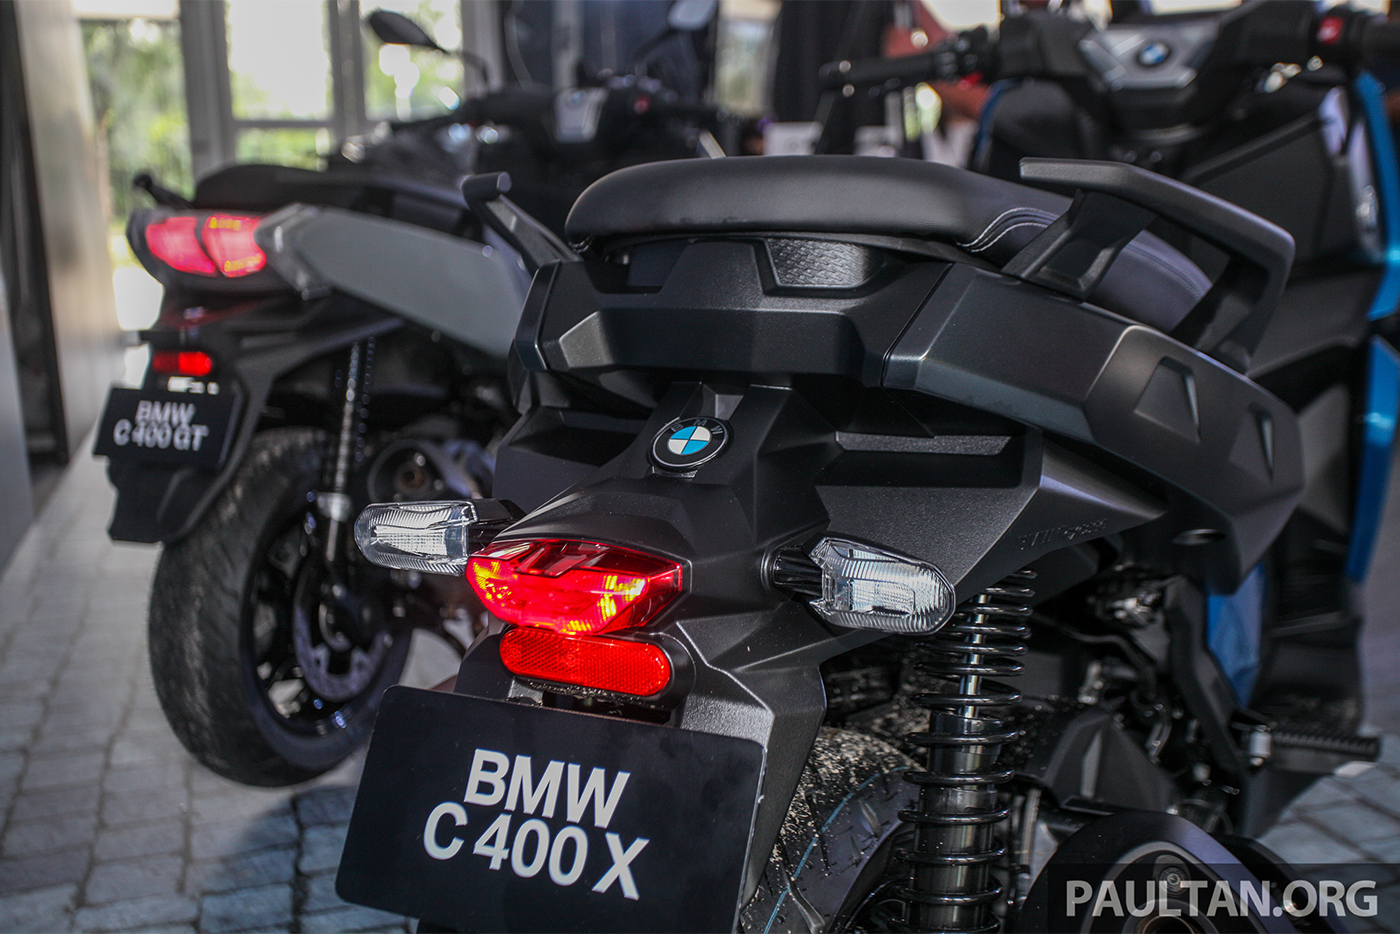 bmw-c400-x-launch-23.jpg